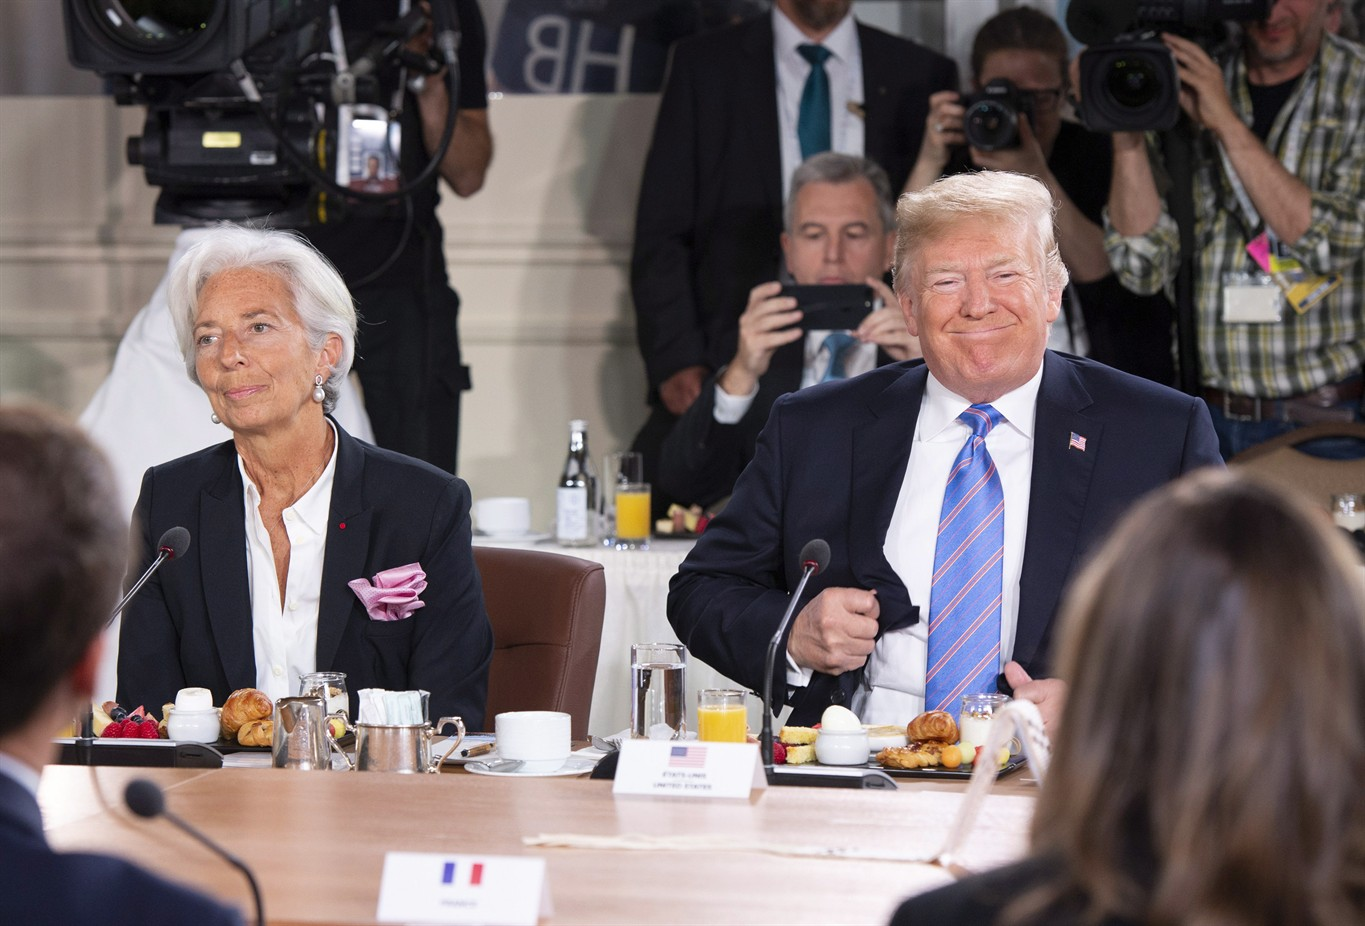 Trudeau said nothing at G7 he hasn't told Trump in person: office